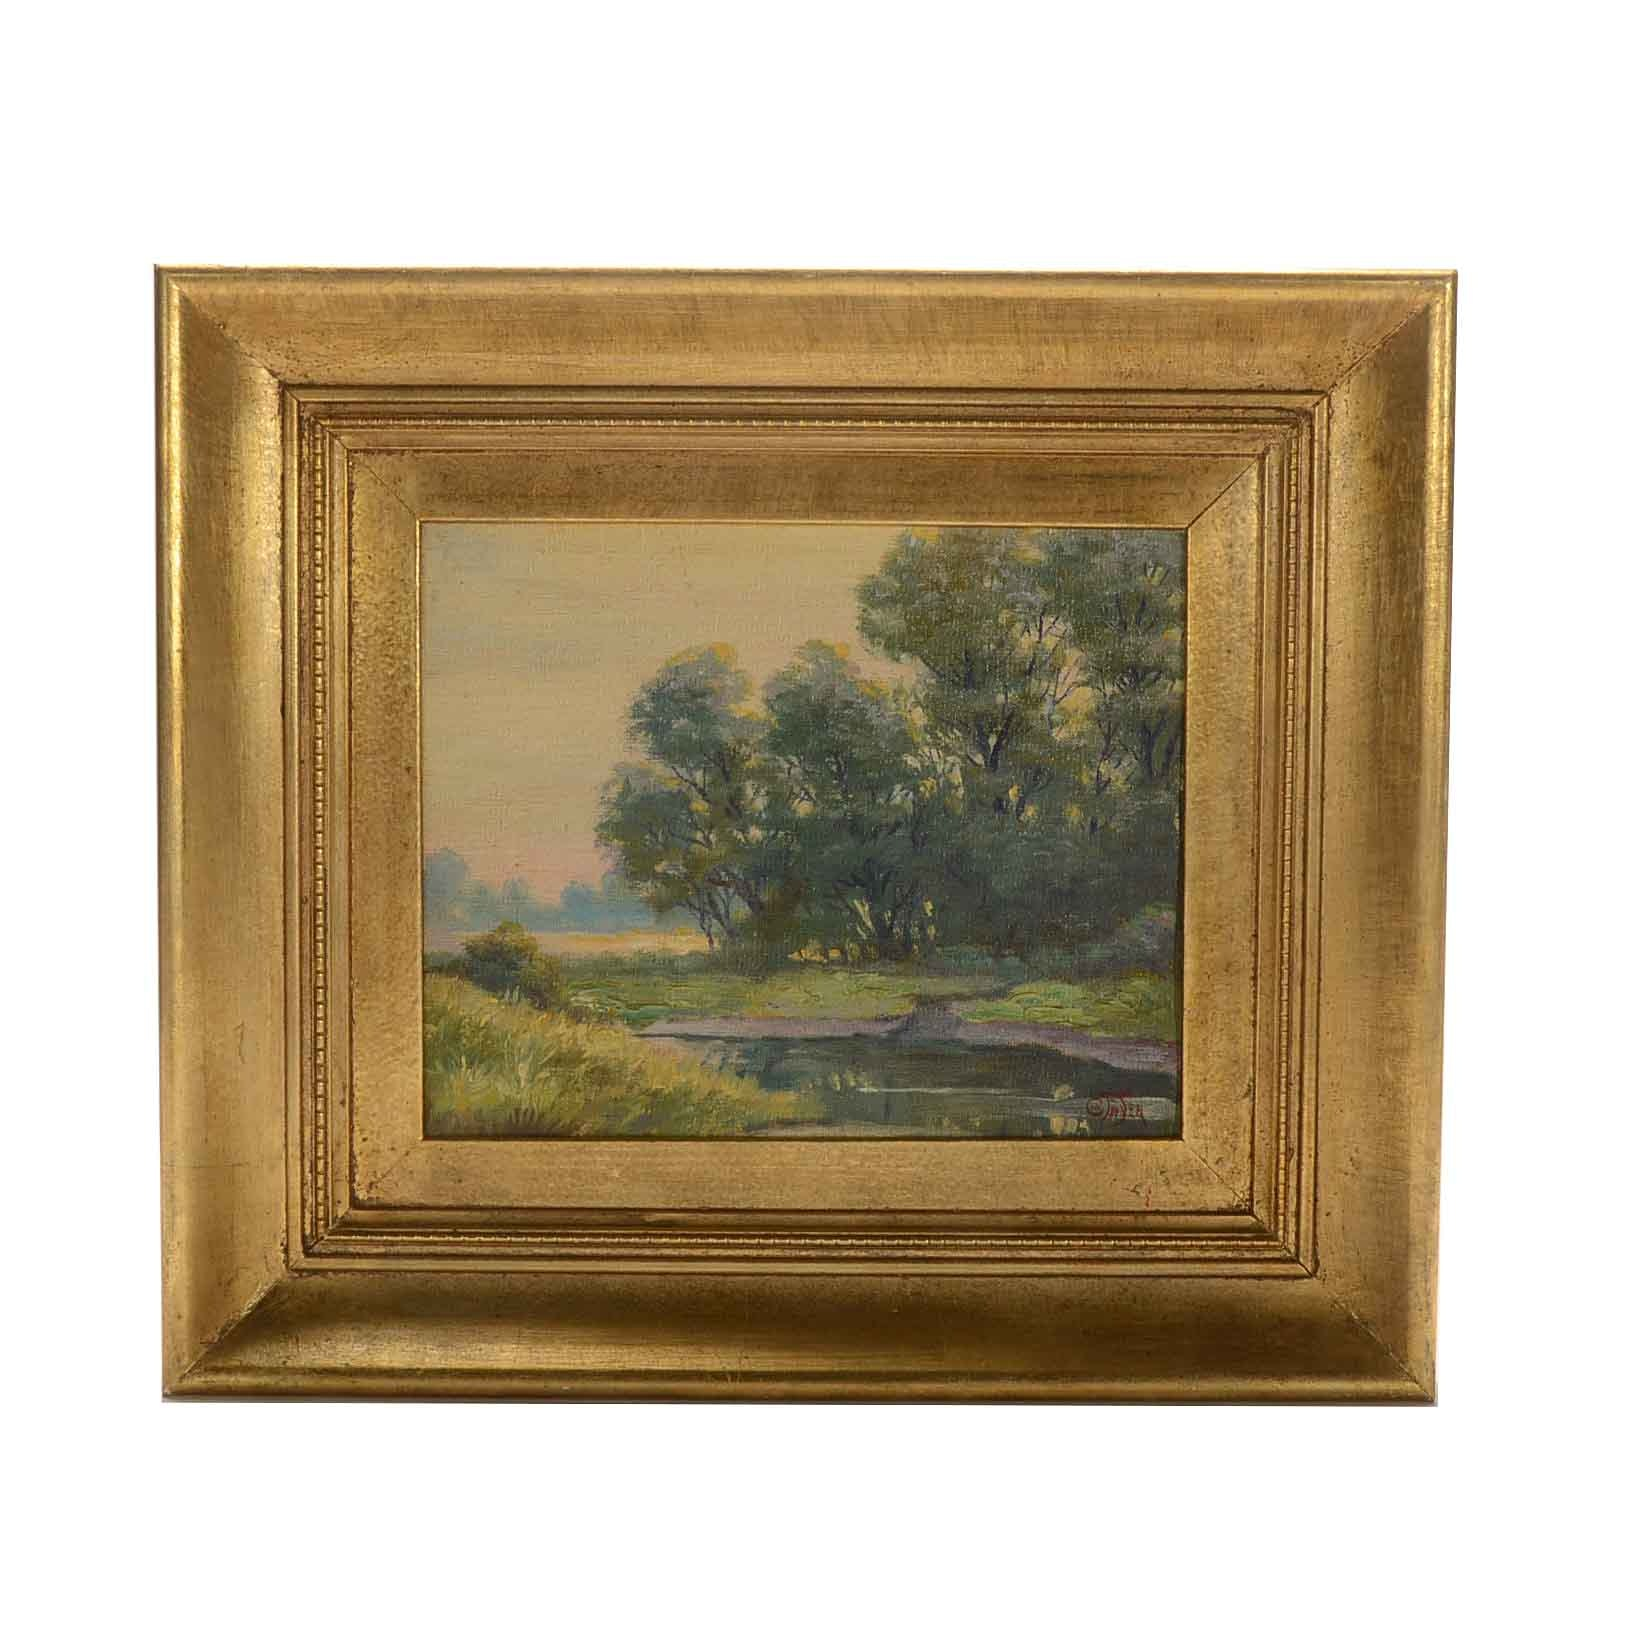 C.W. Fryer Signed Oil Painting of a Landscape at Sunset